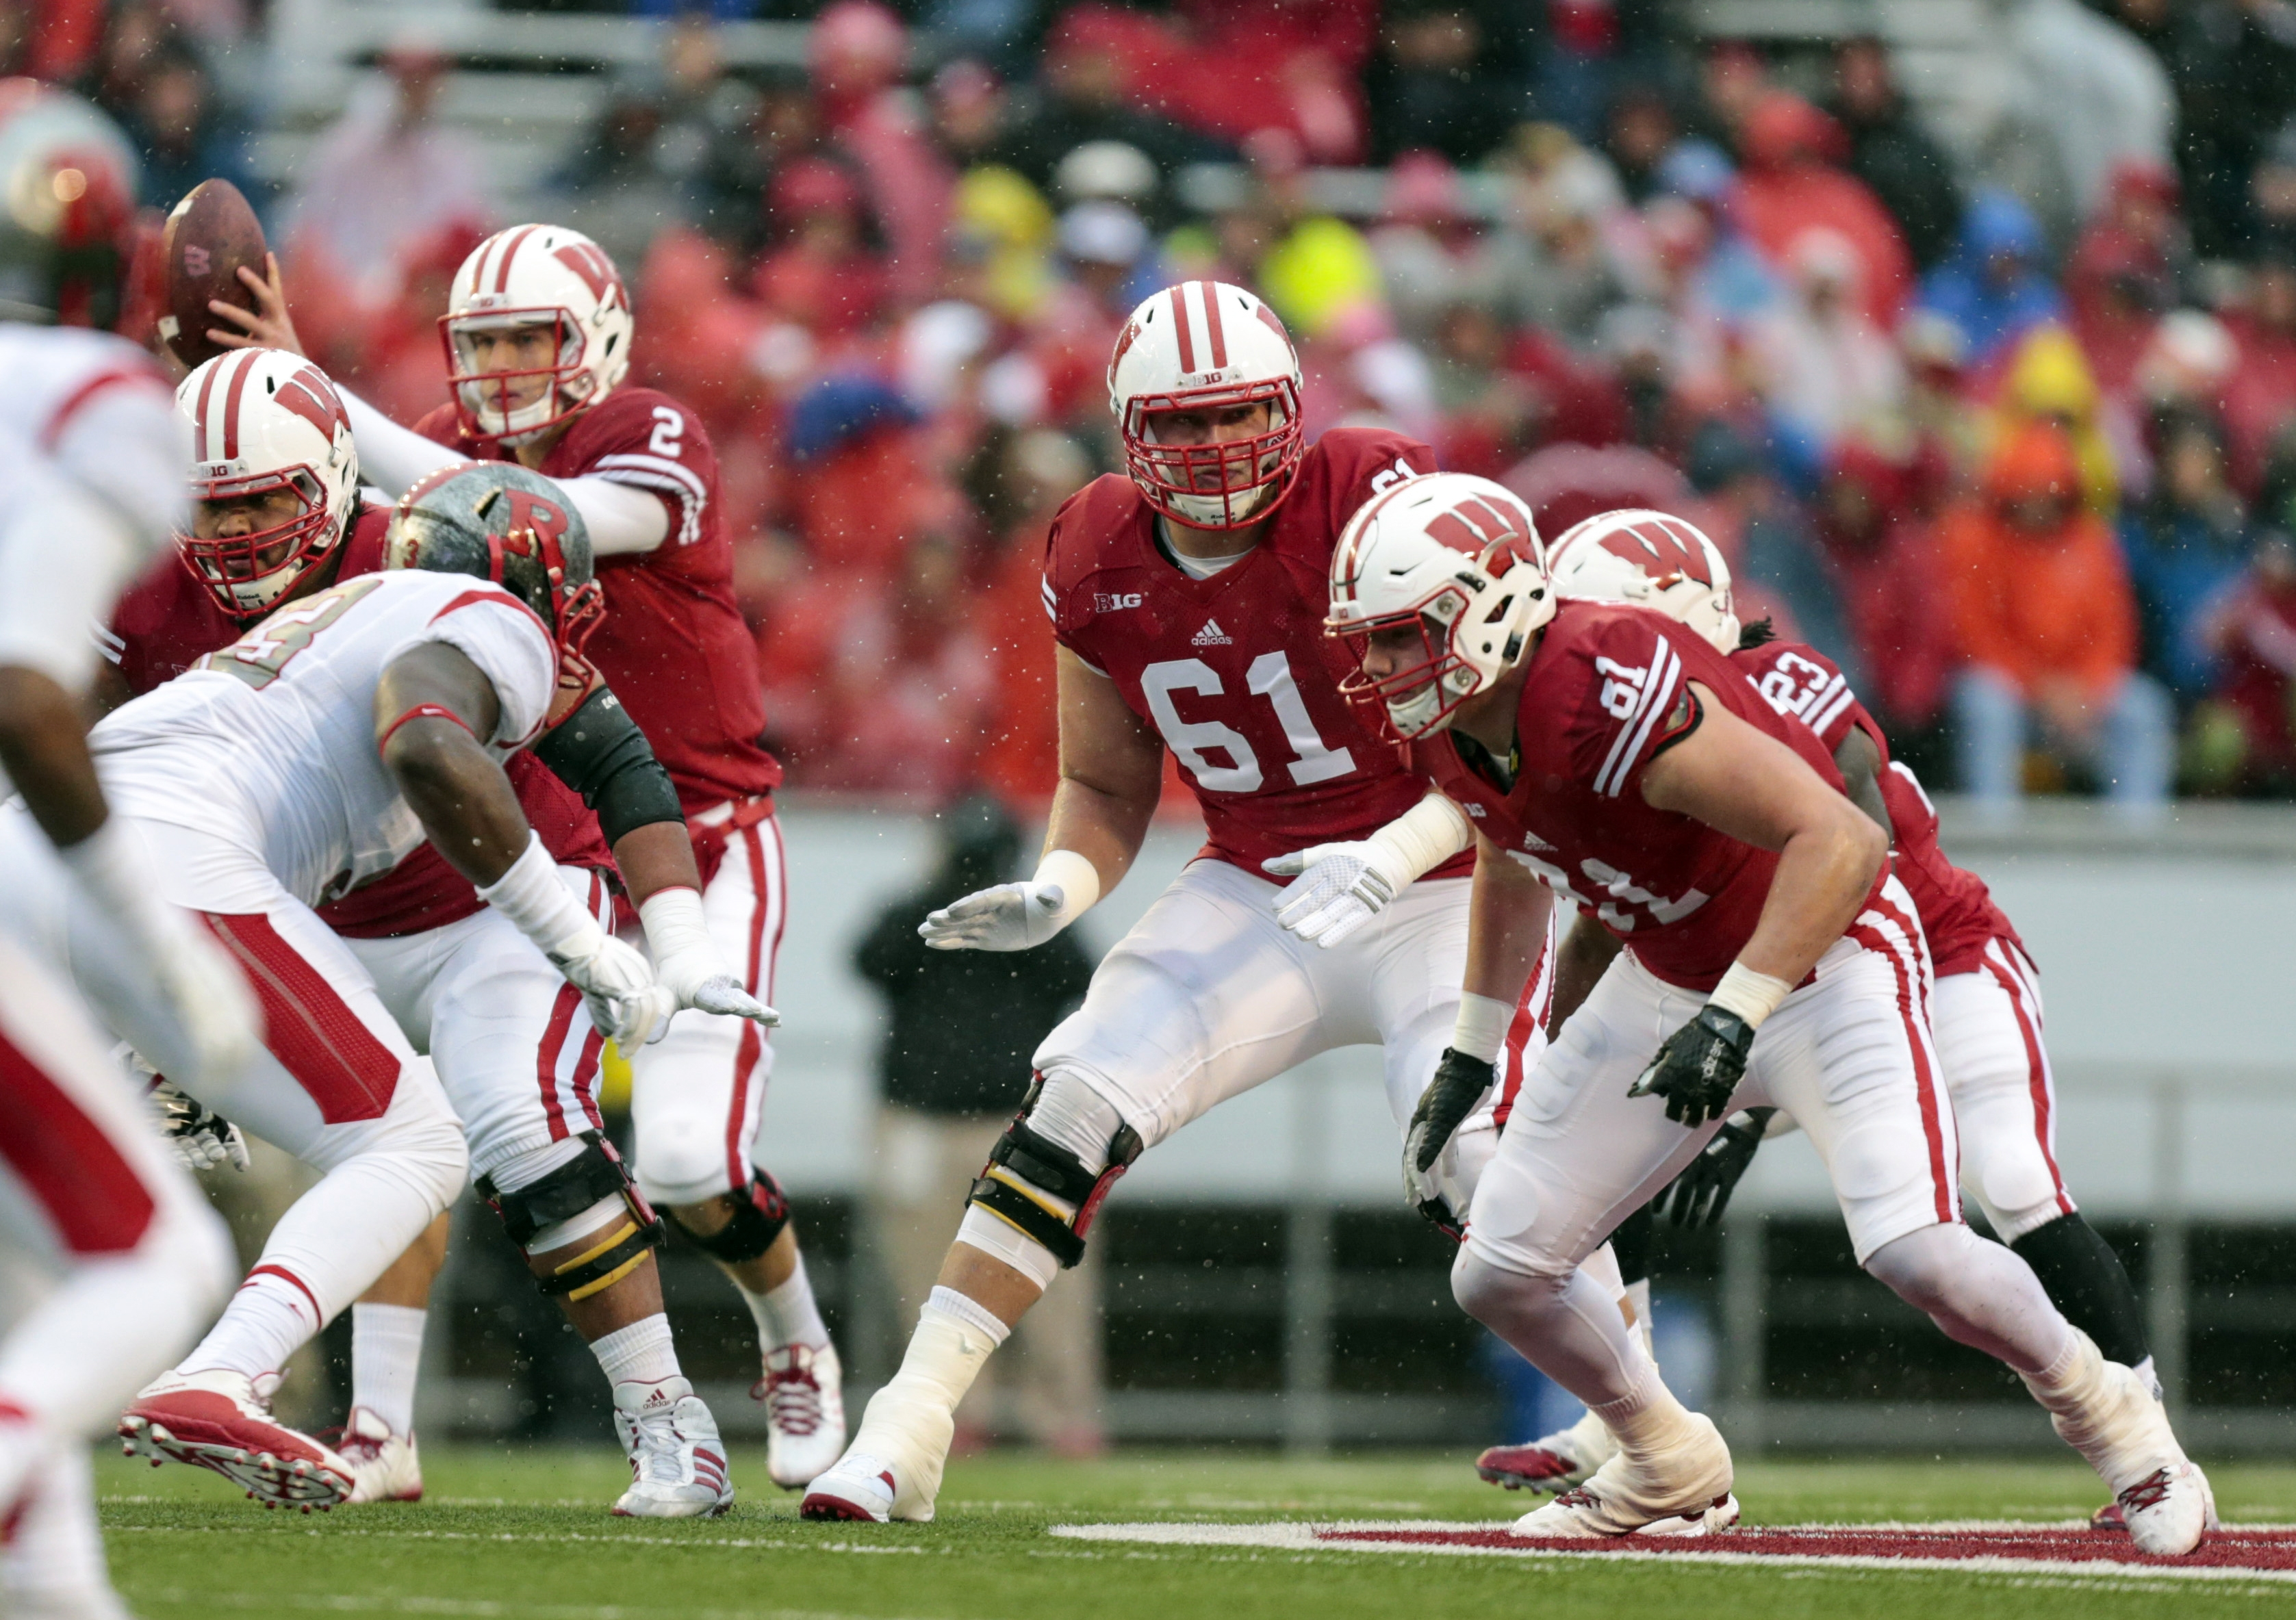 FILE - In this Oct. 31, 2015, file photo, Wisconsin offensive lineman Tyler Marz (61) blocks during the first half of an NCAA college football game against Rutgers in Madison, Wis. Wisconsin hopes its running game can build on the success it had in its re